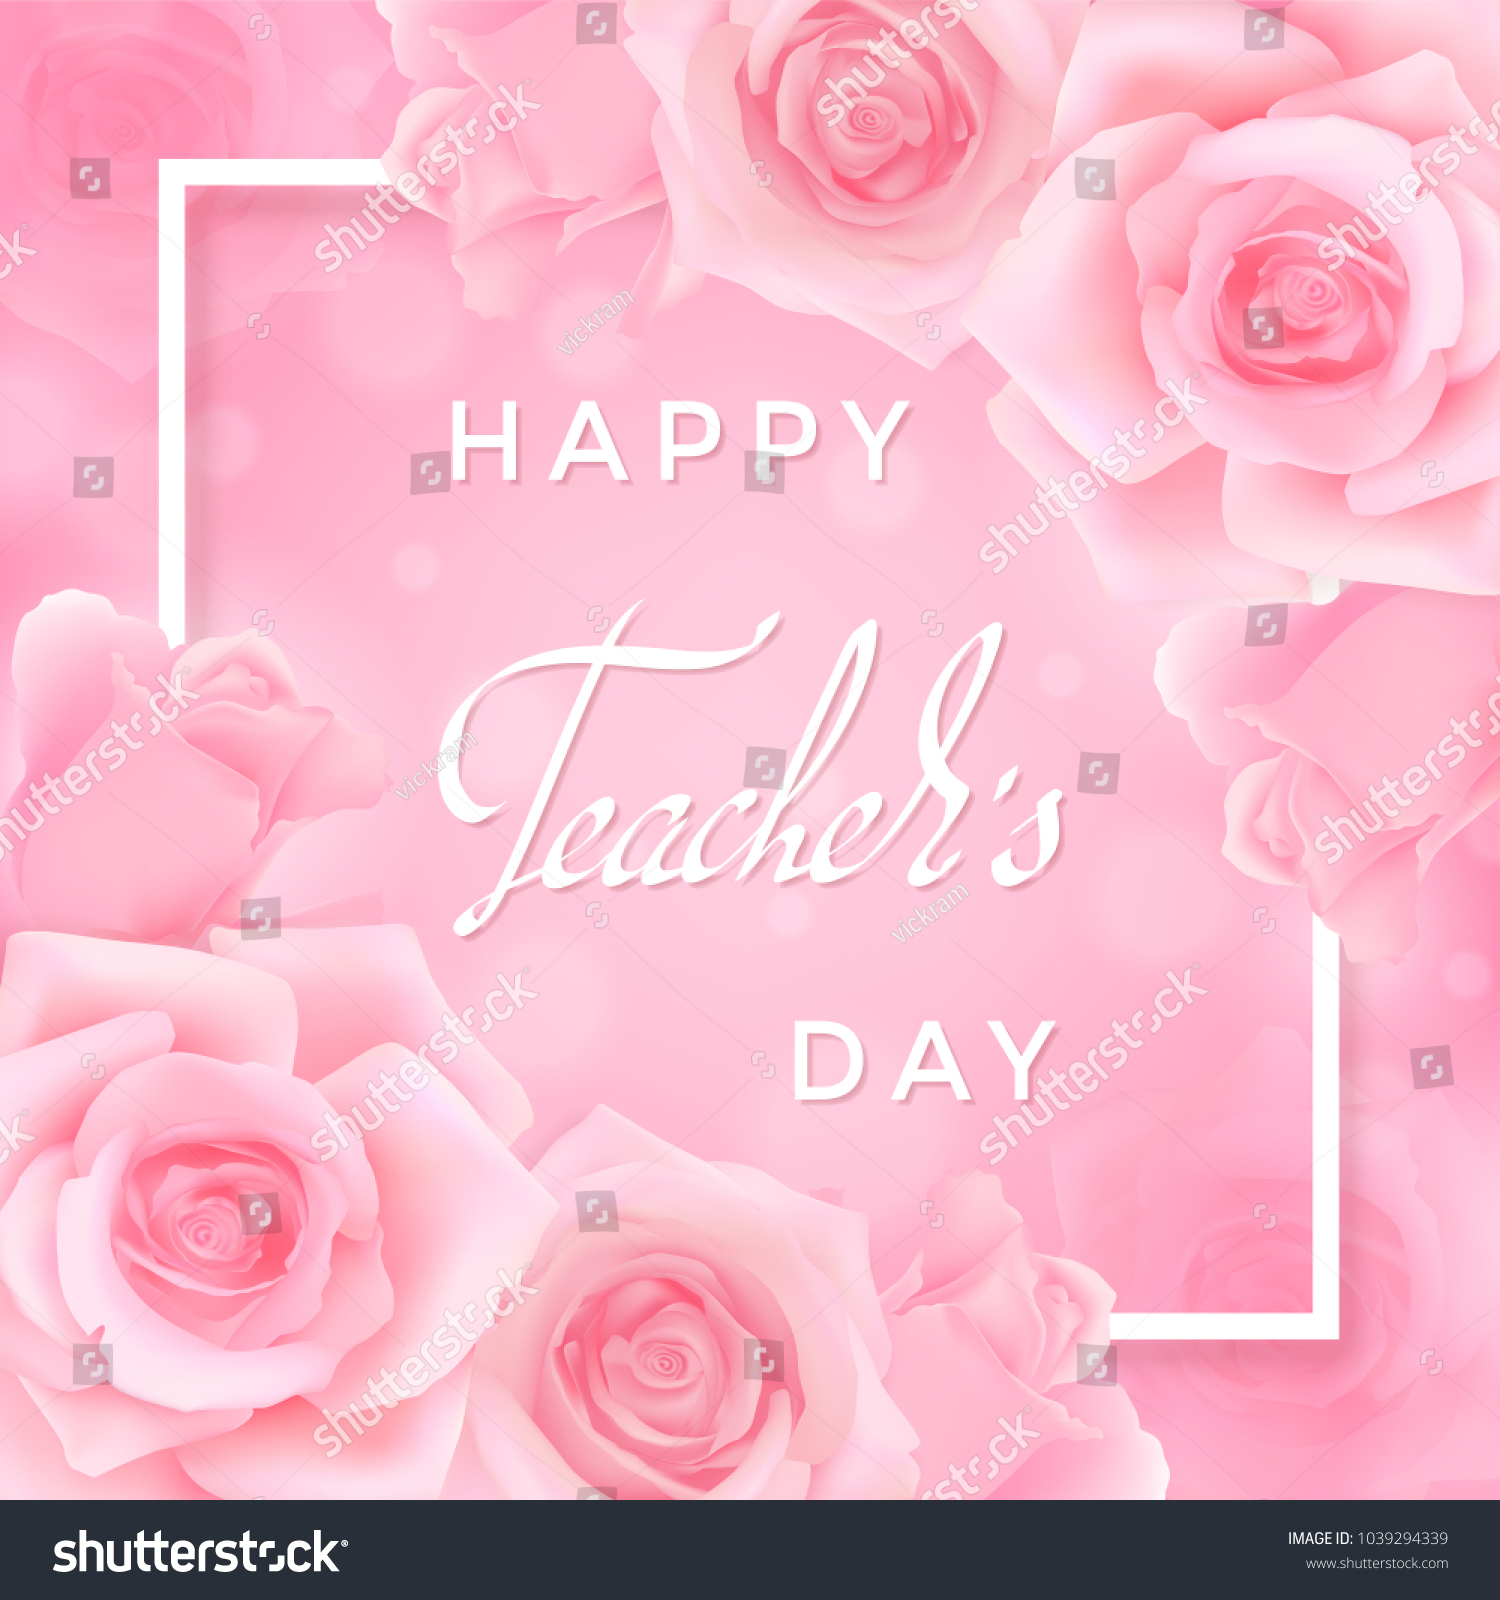 Happy Teachers Day Greeting Card Pink Stock Vector Royalty Free